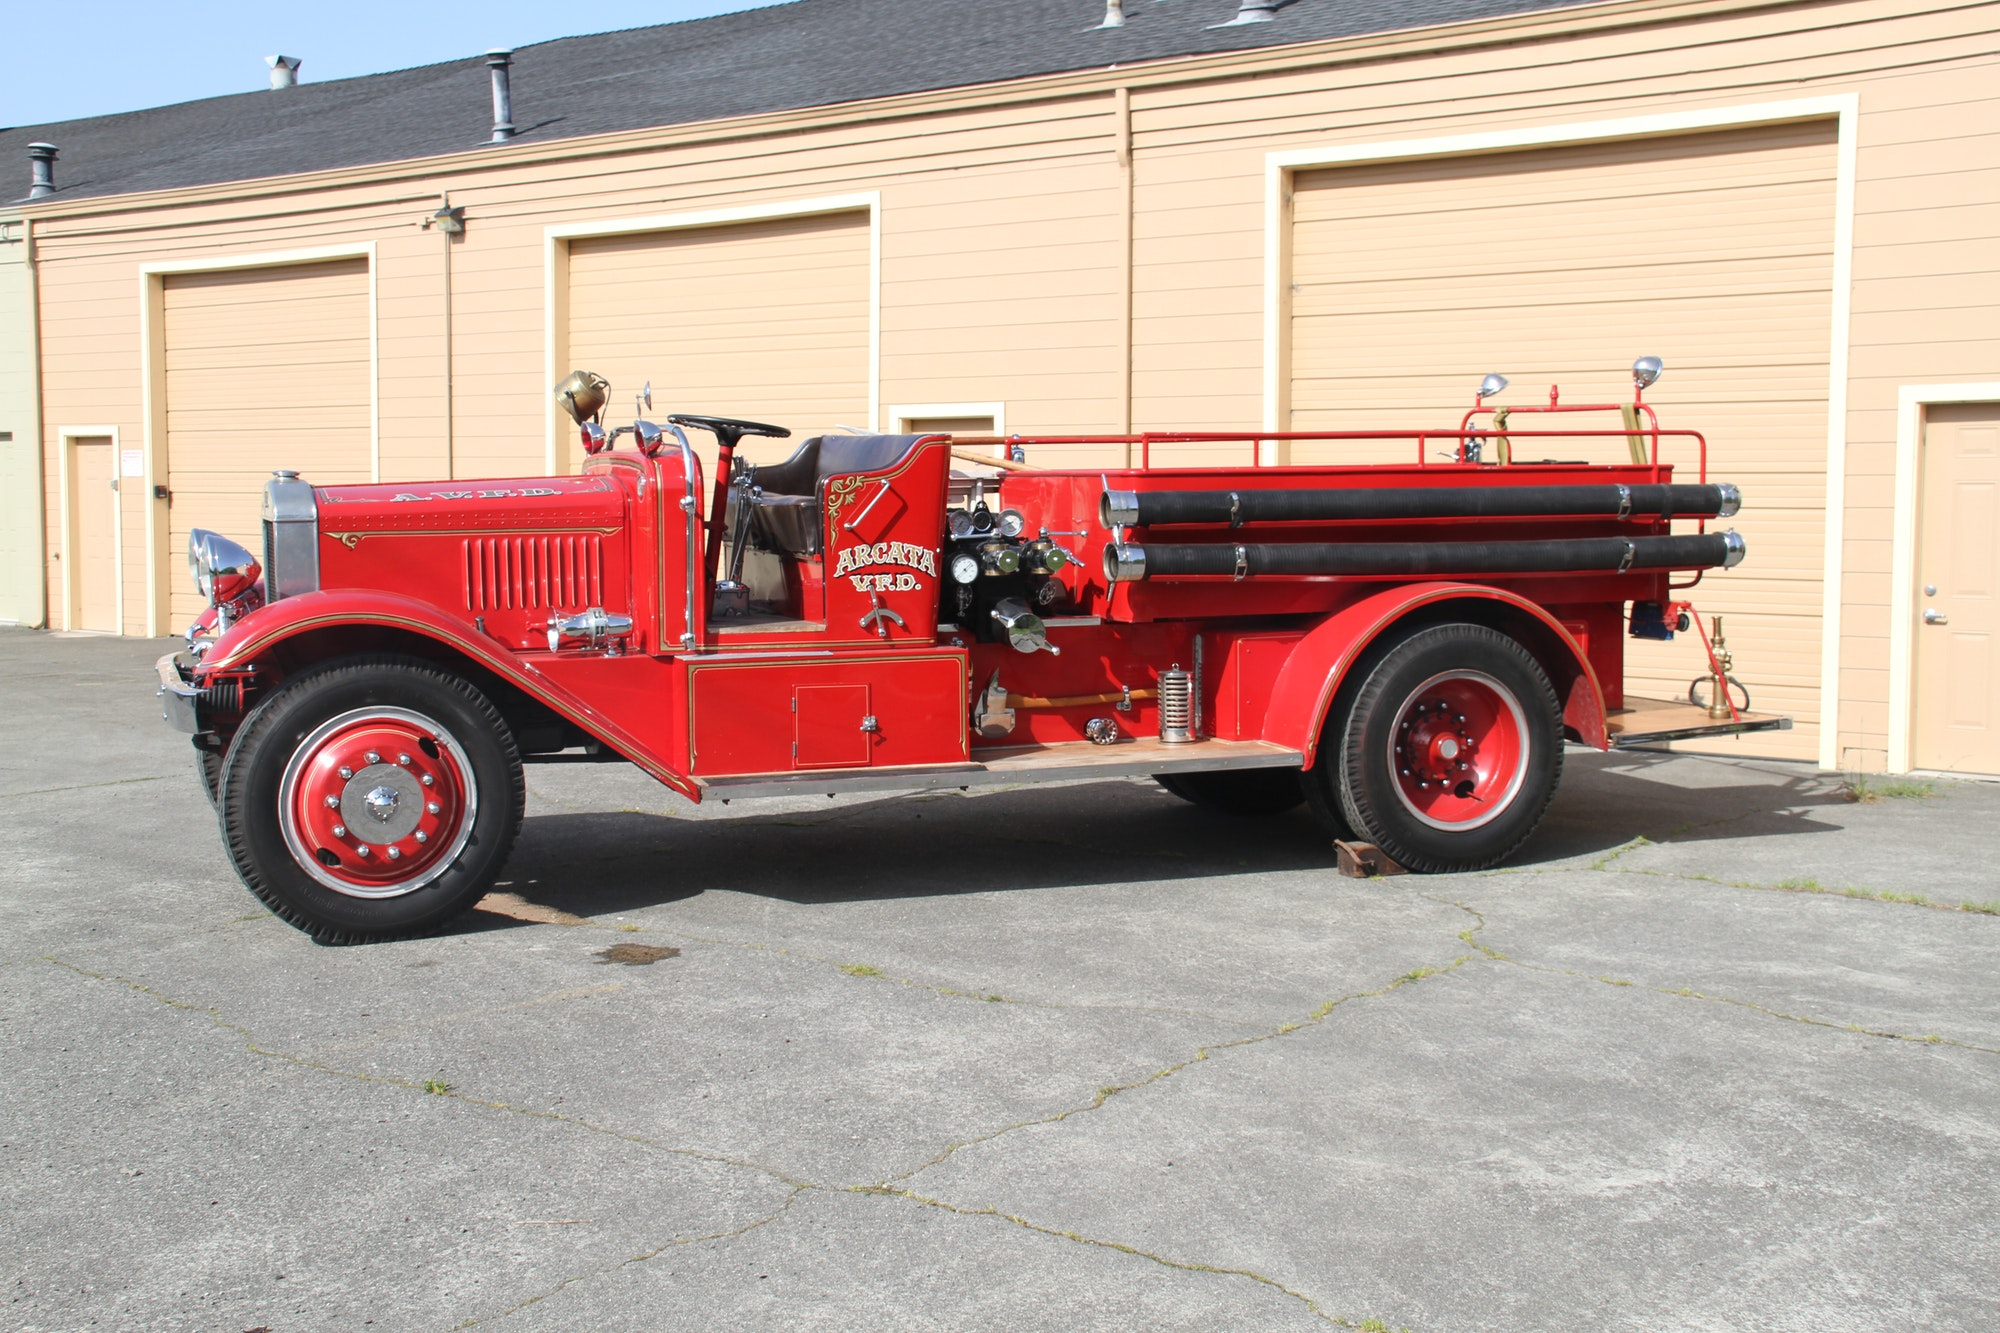 Photo of the USA Fire Engine.